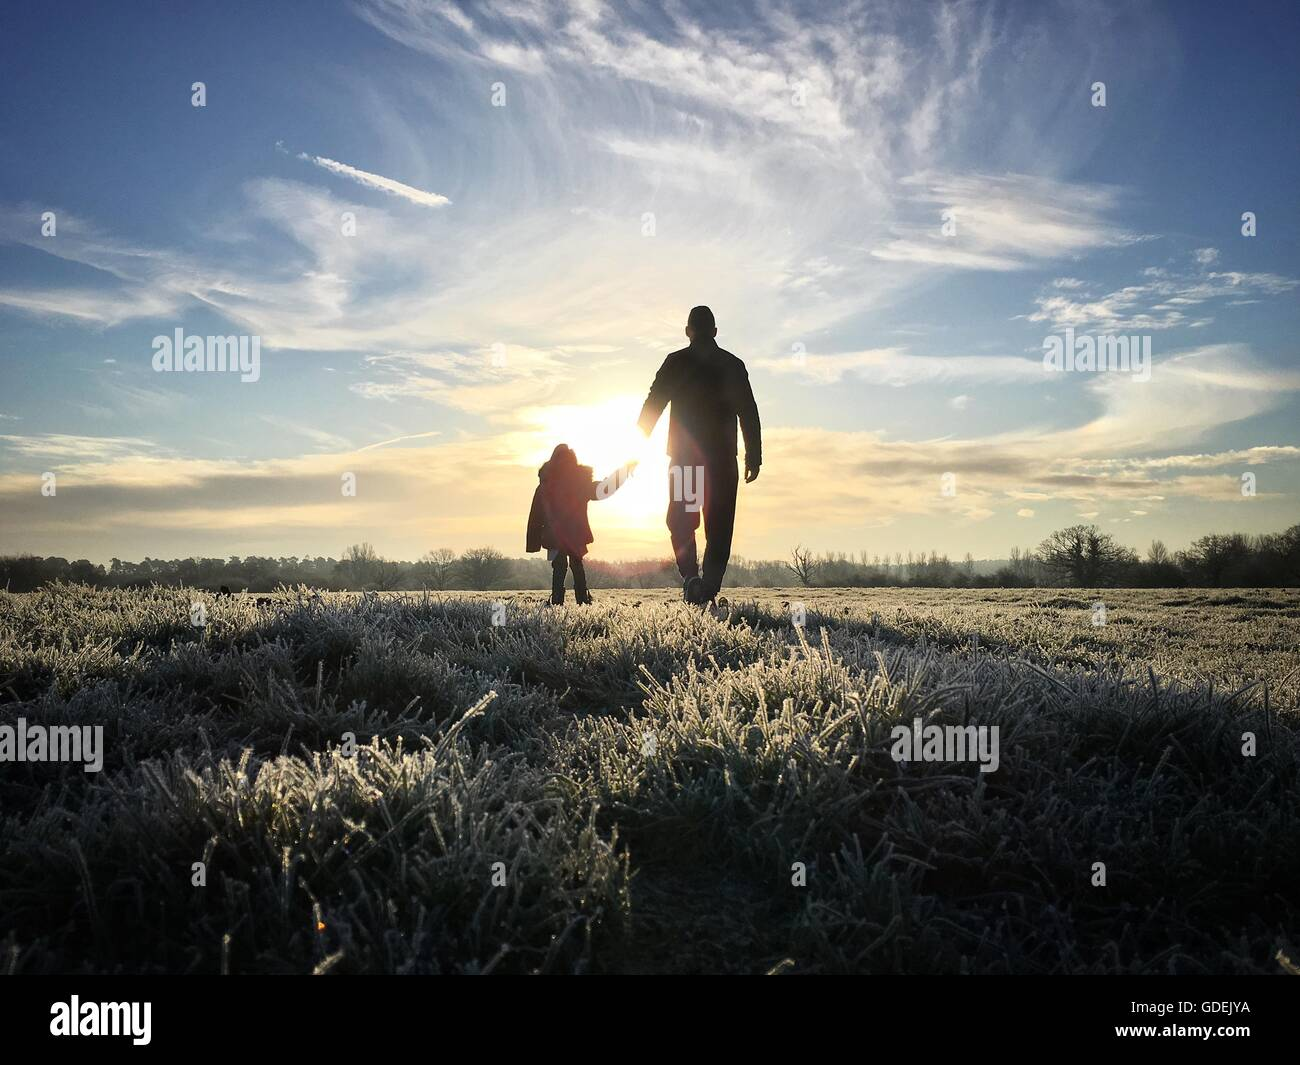 Silhouette of father holding daughter's hand - Stock Image